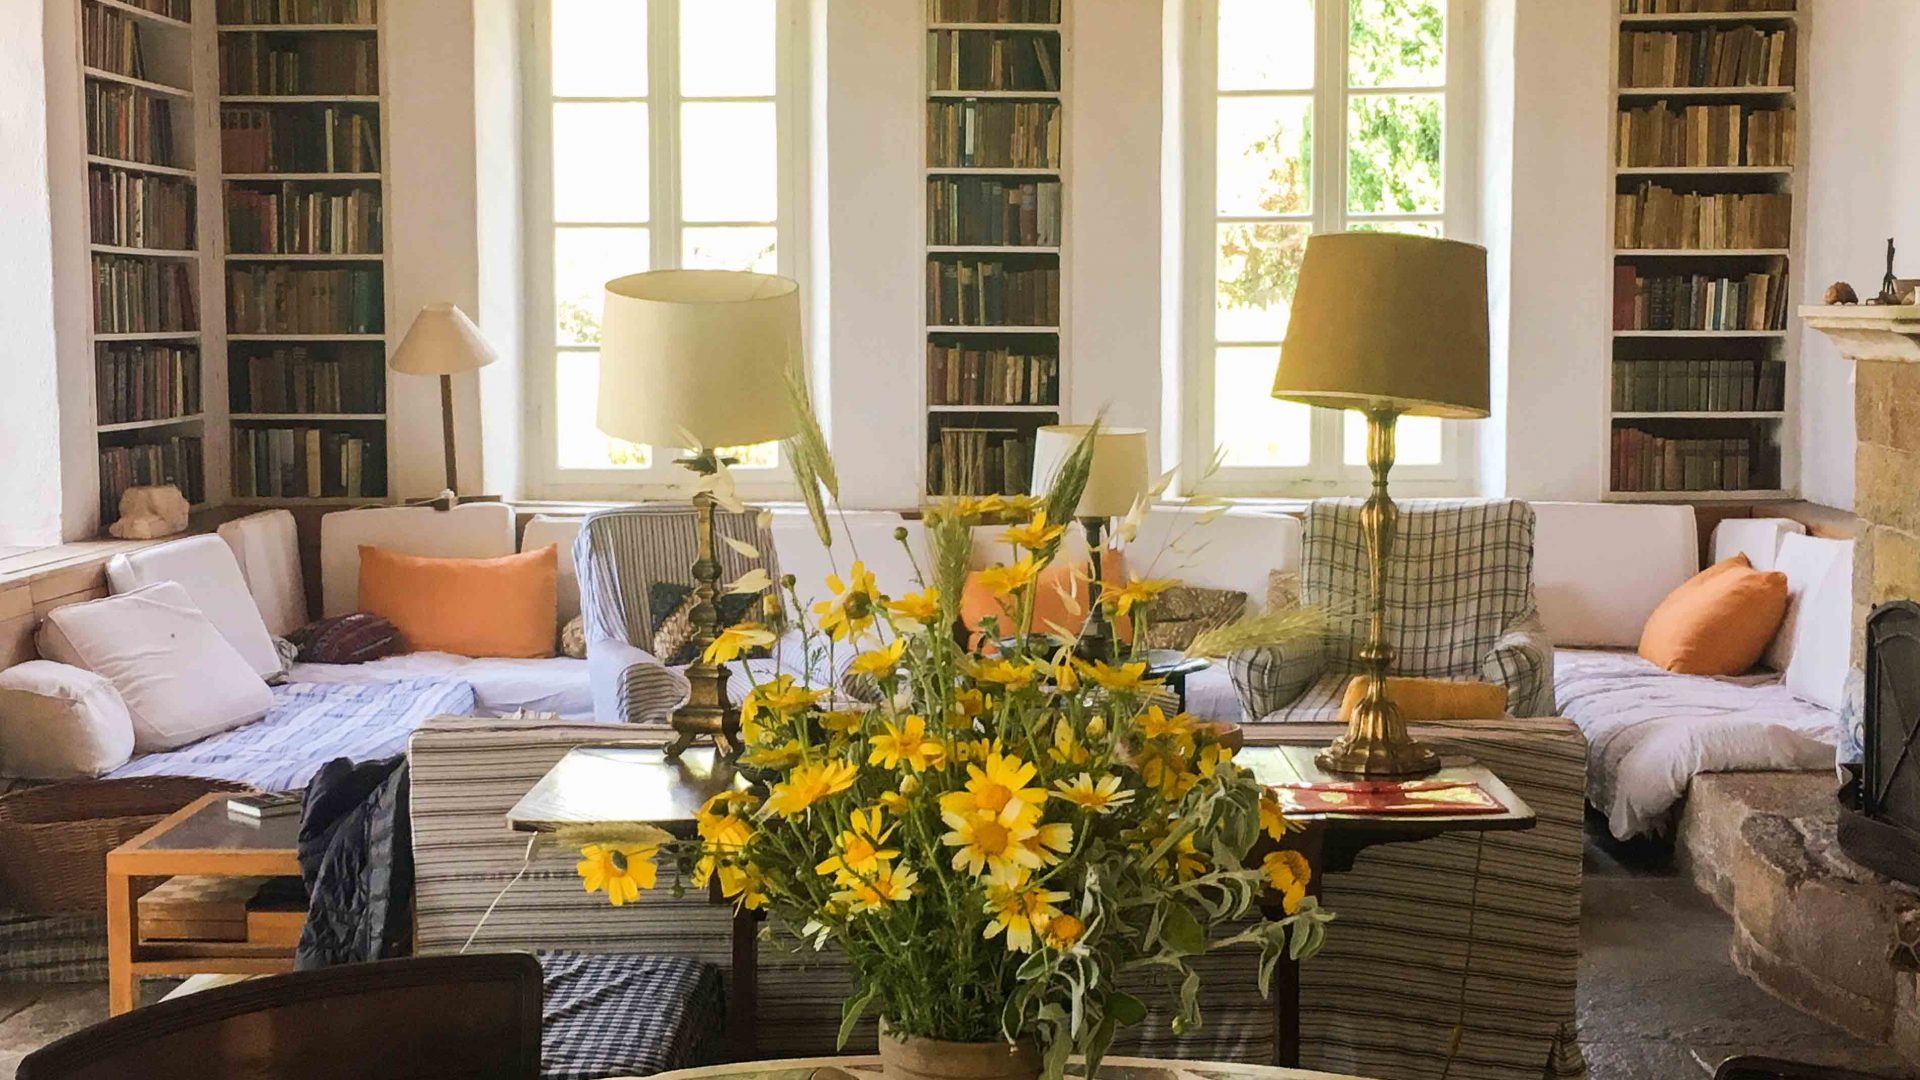 The cosy, book-lined living room at Patrick Leigh Fermor's home.